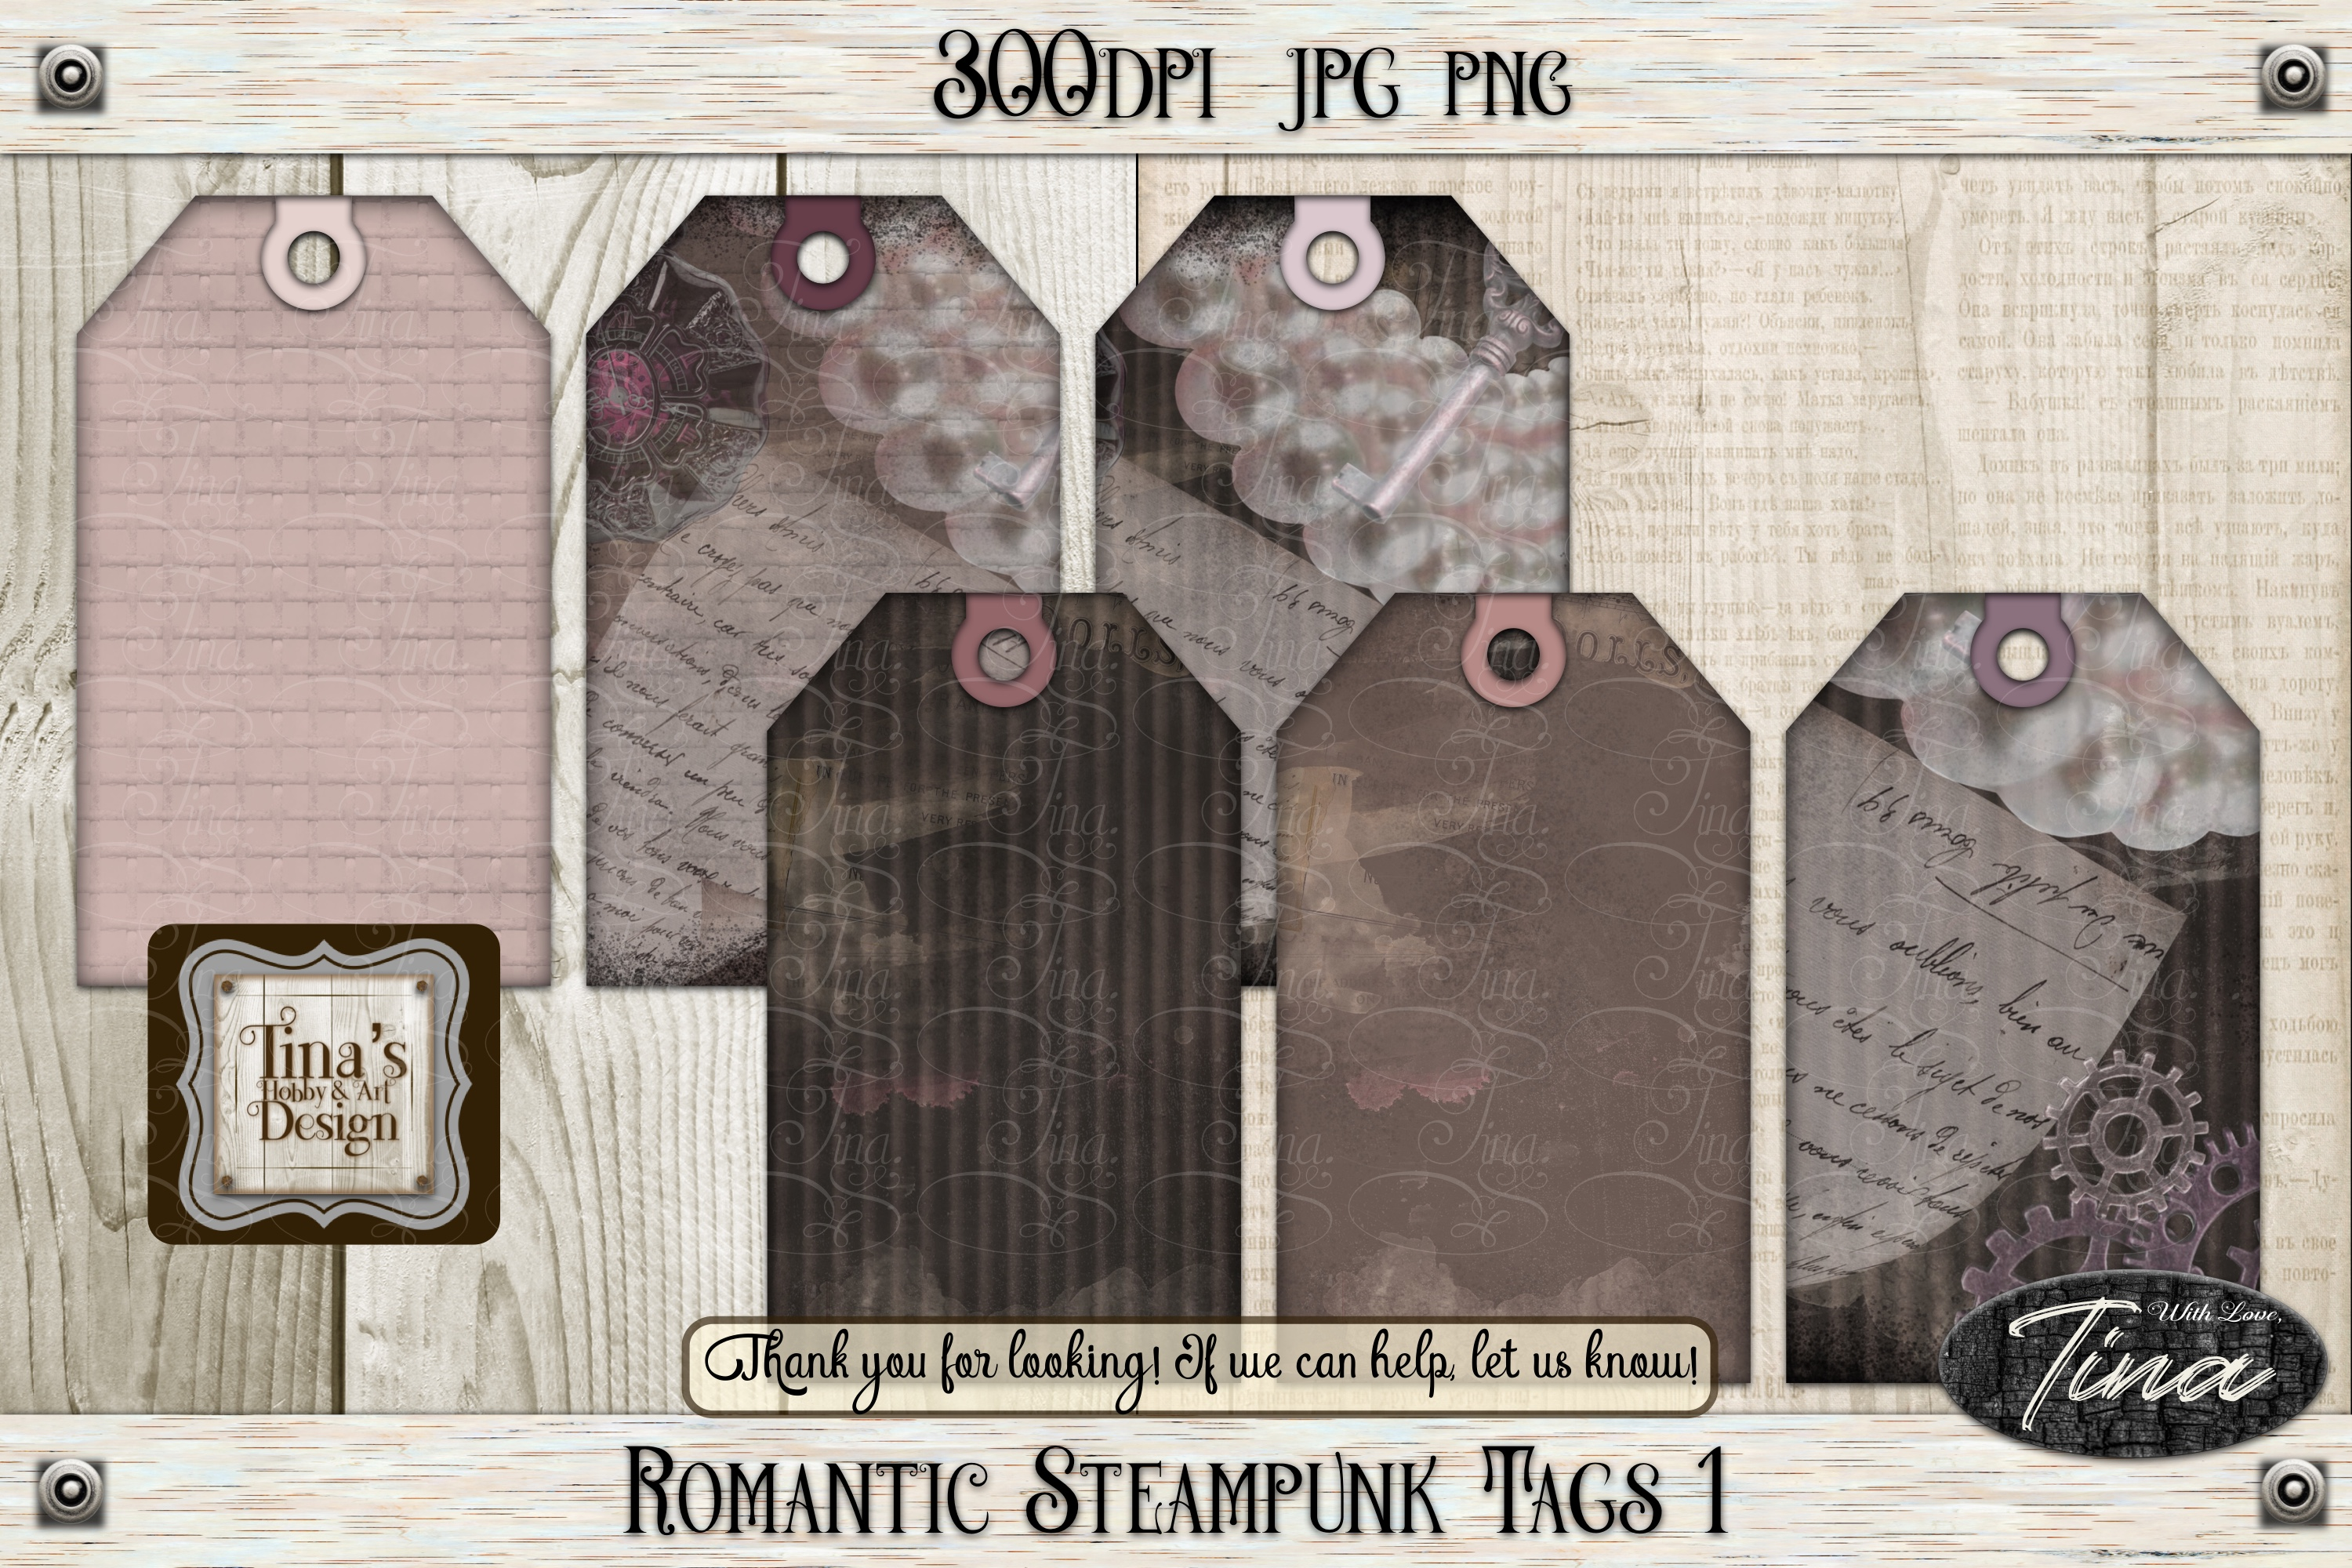 Romantic Steampunk Tags 3 Collage Mauve Grunge 101918RST3 example image 8